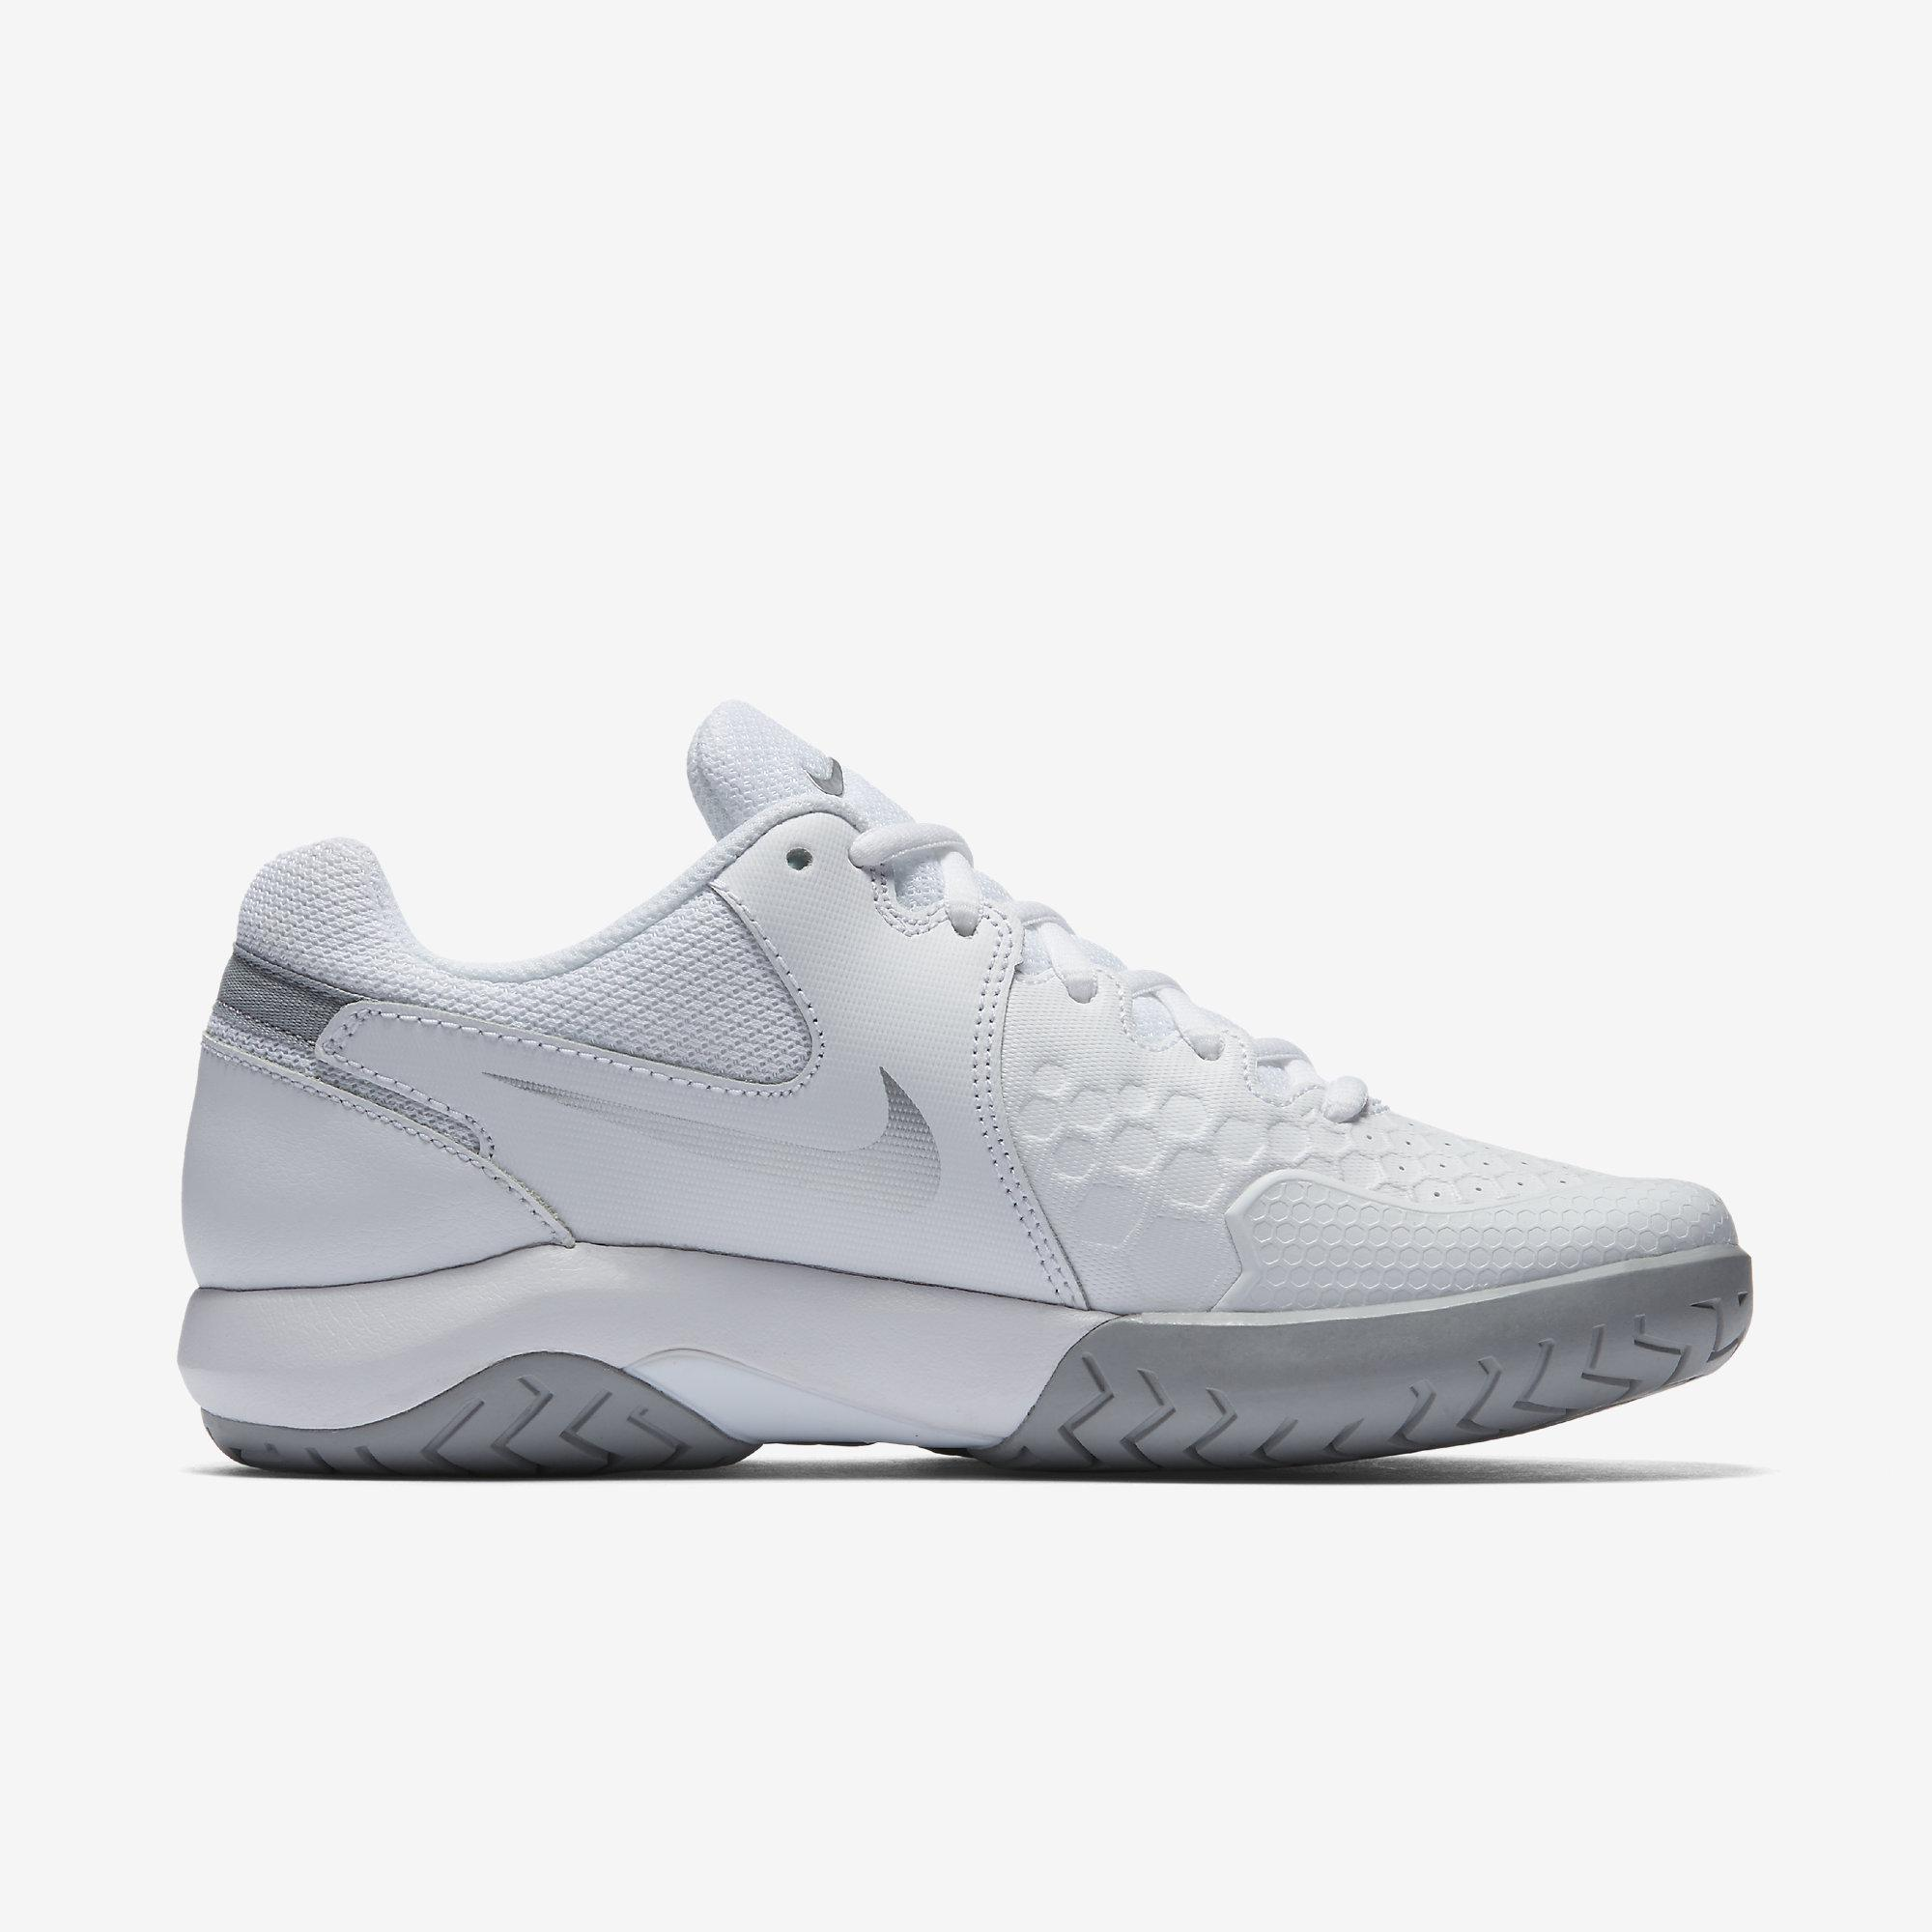 6d112063b7bc7 Nike Womens Air Zoom Resistance Tennis Shoes - White Metallic Silver ...